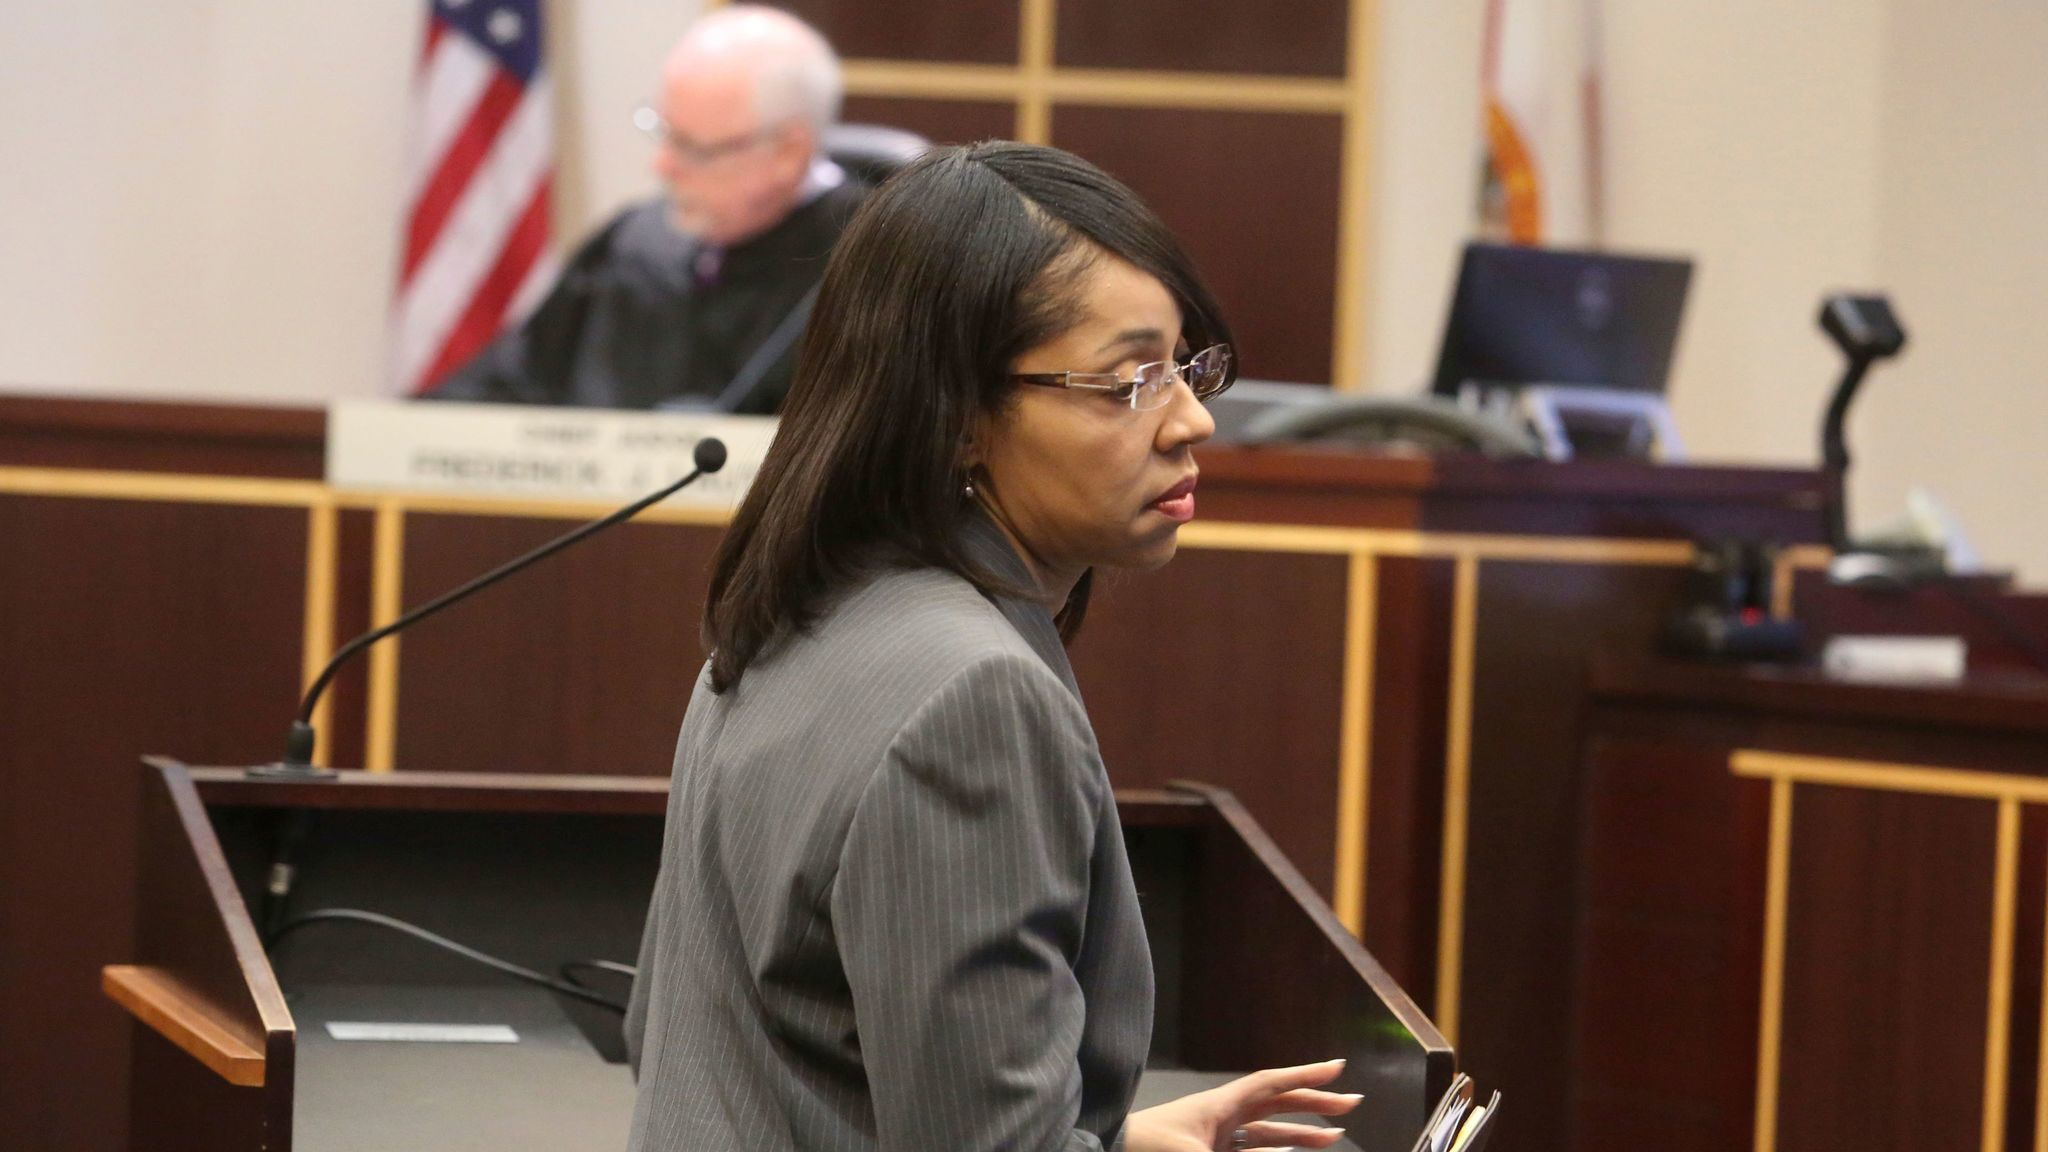 Dist. Atty. Aramis Ayala of Florida announced that she would not seek the death penalty in any of her cases.